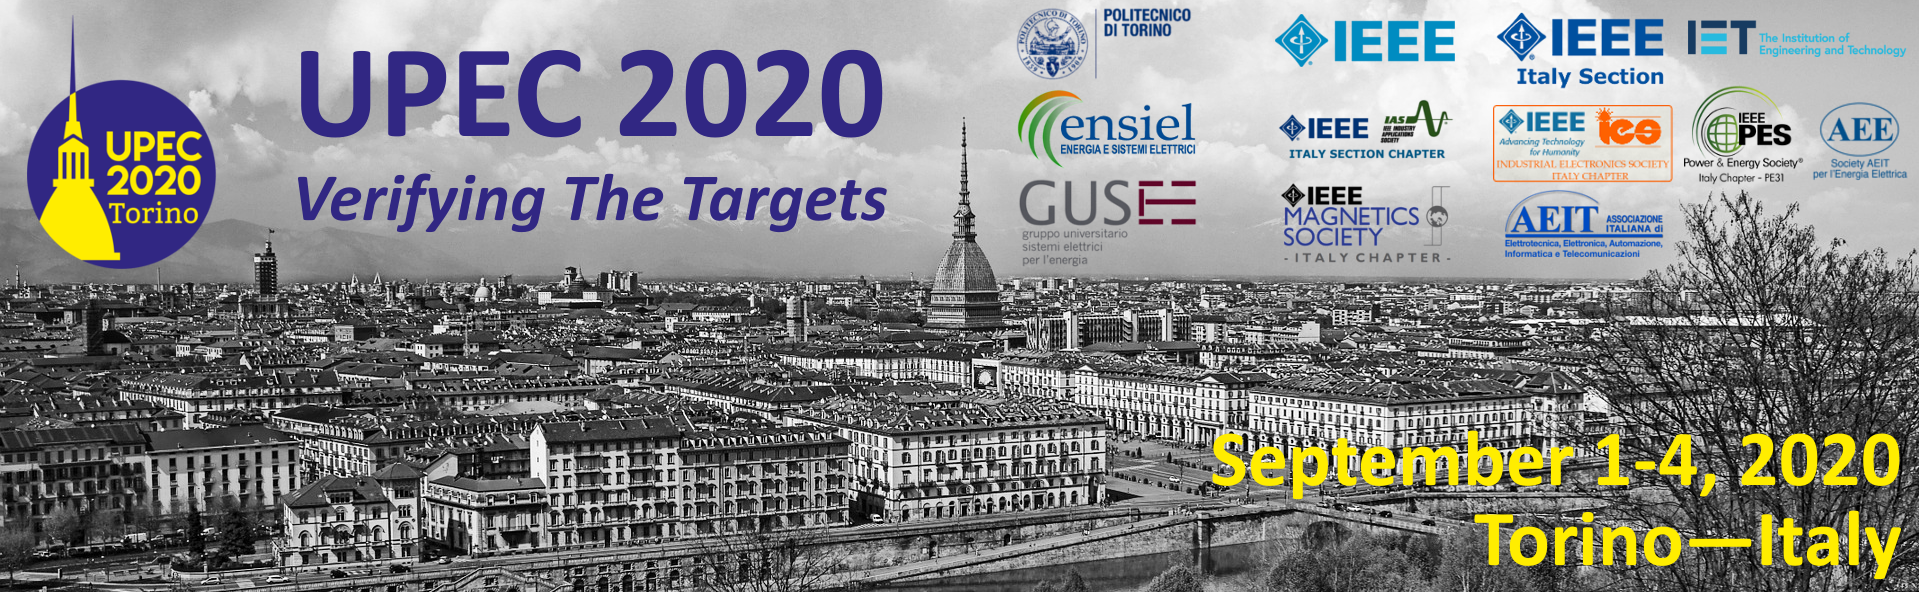 Virtual Conference UPEC 2020 – Verifying The Targets